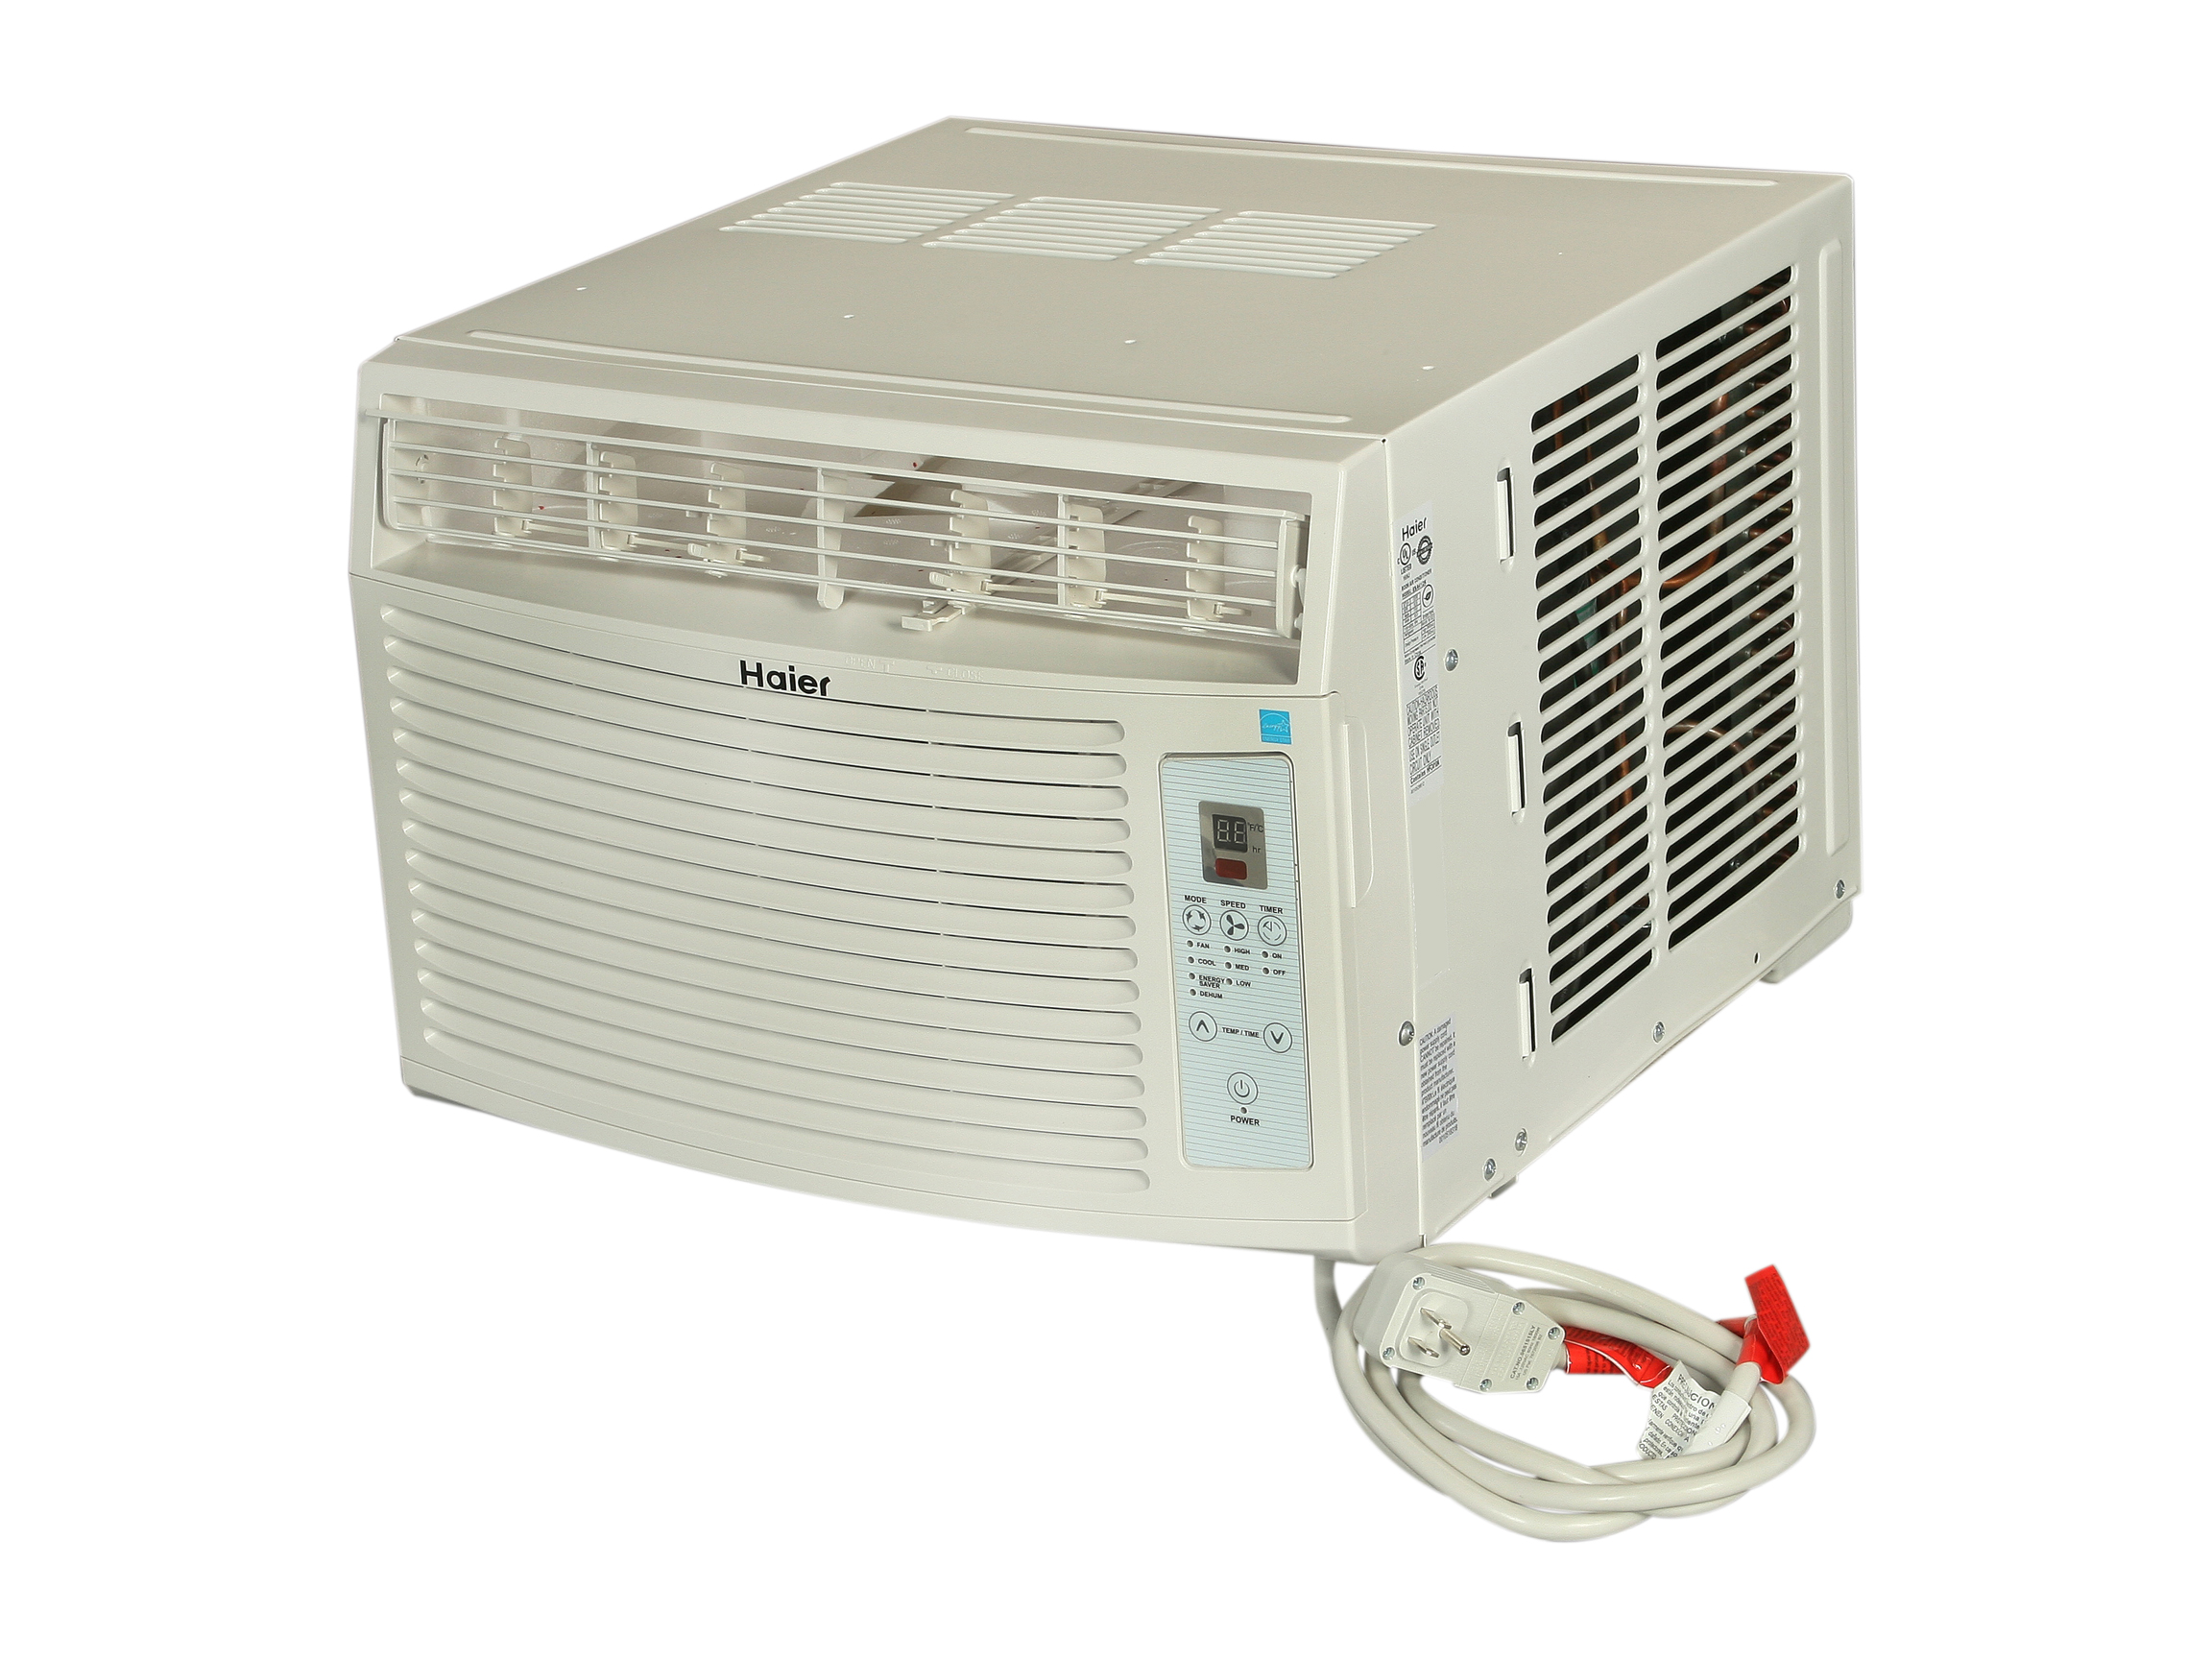 Haier esa412k 12 000 cooling capacity btu window air for 12k btu window air conditioner